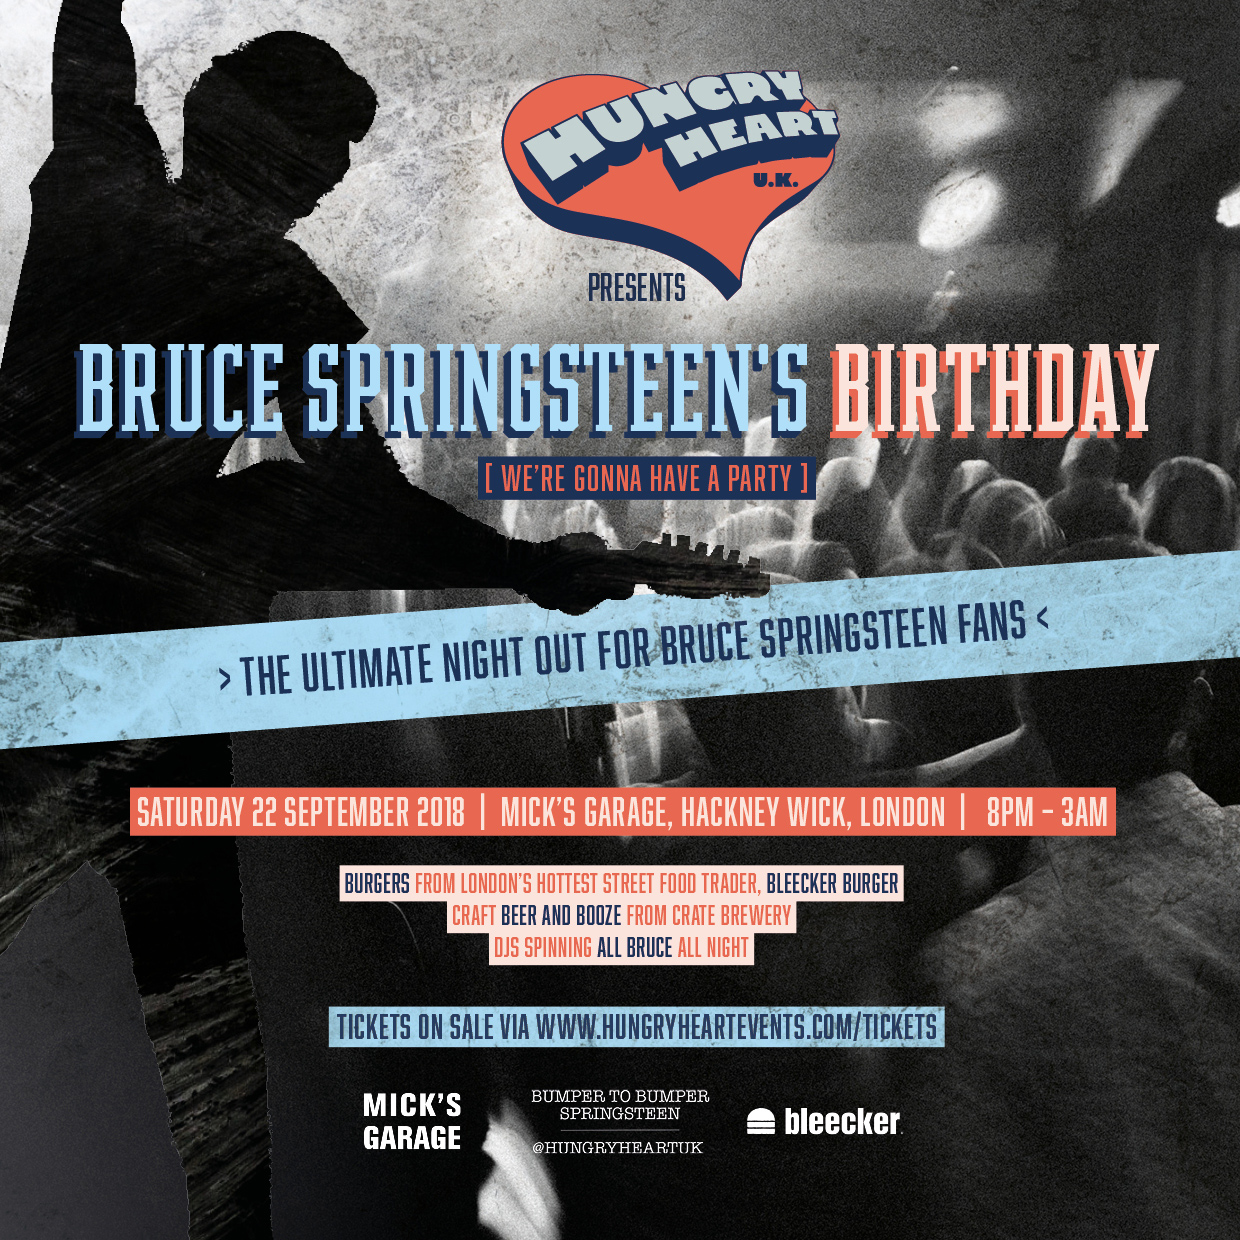 Hungry Heart presents Bruce Springsteen's Birthday